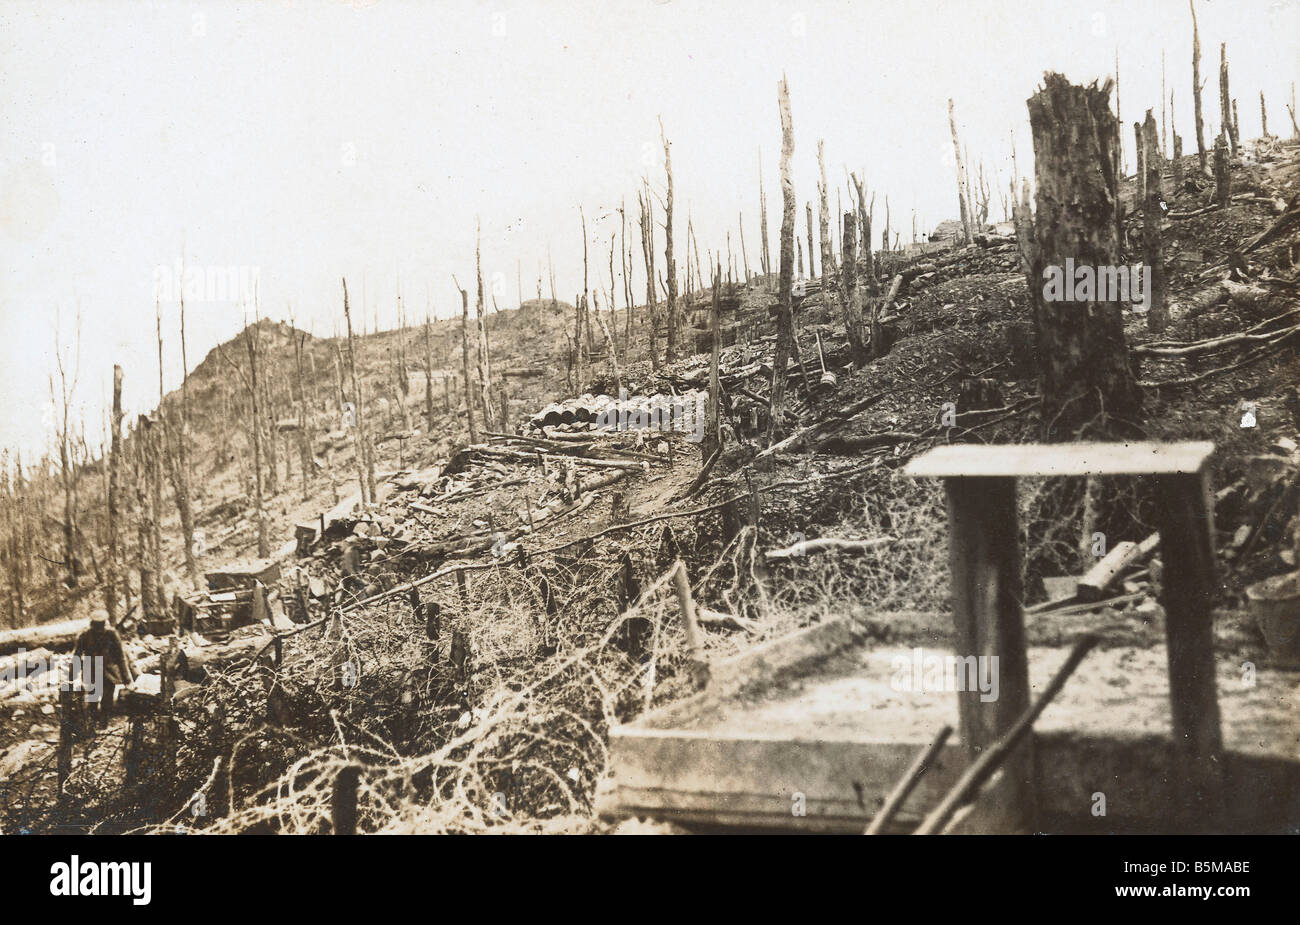 2 G55 W1 1916 17 WWI Western Front battlefield 1916 History WWI Western Front View of a battlefield at the Western - Stock Image